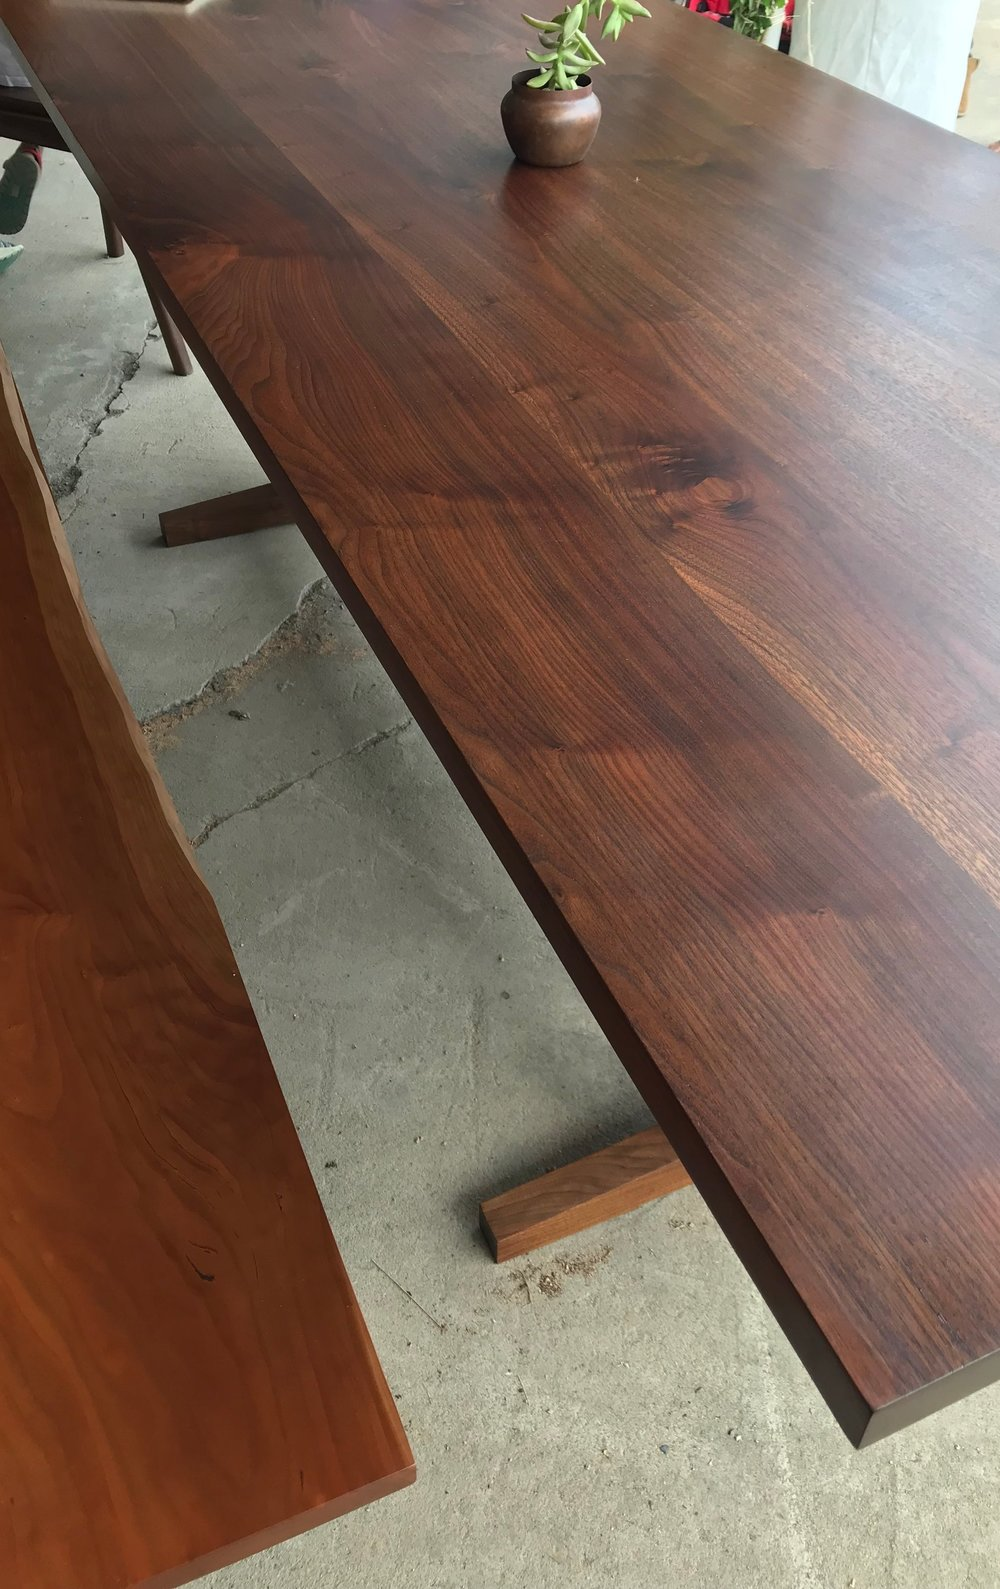 Fine Woodworking - A Fresh Take on the Trestle TableA live edge and nontraditional joinery revamp a traditional formIssue #262 July/August 2017